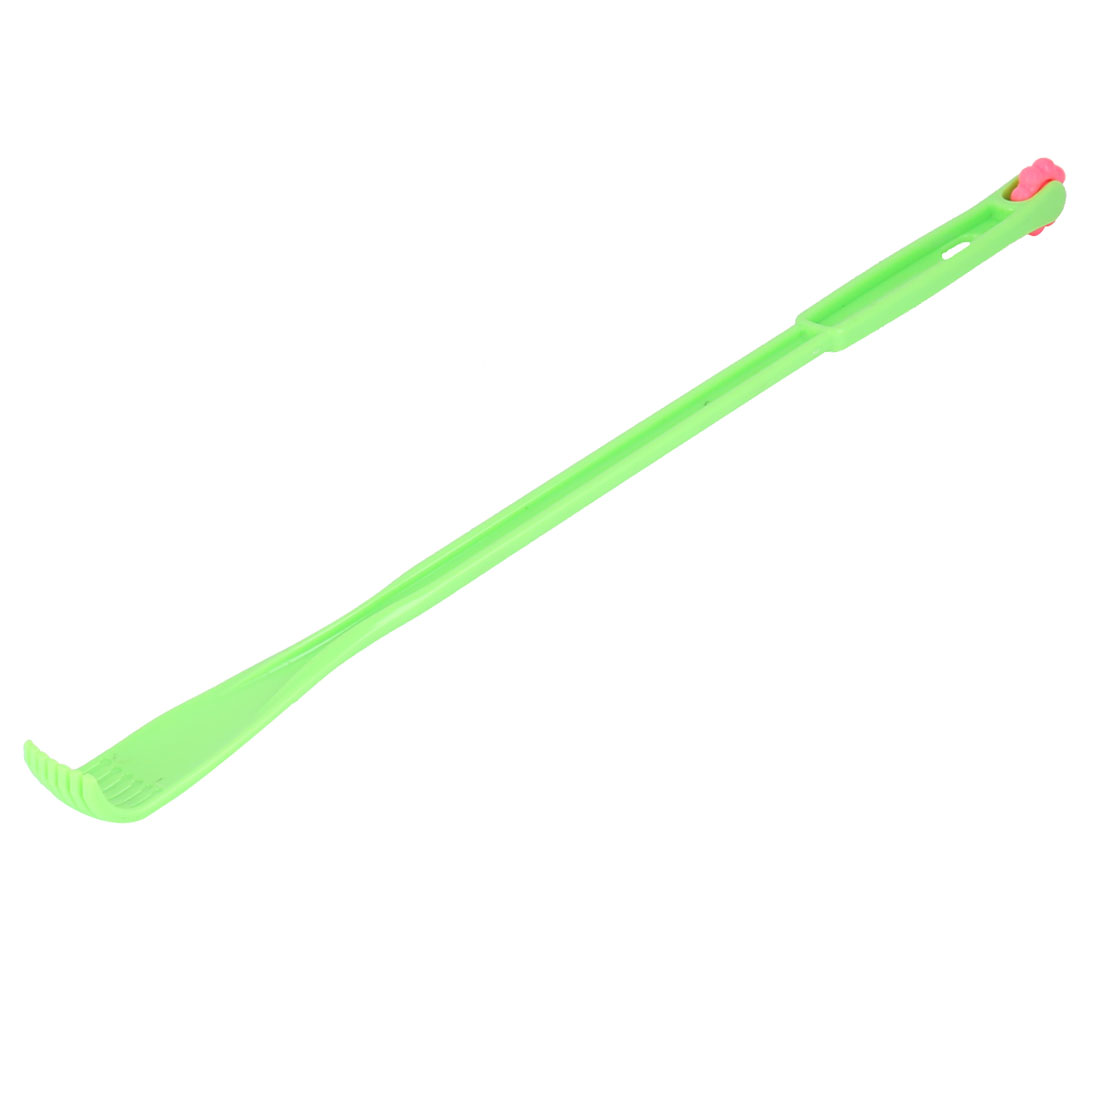 Household Plastic Relaxation Relieve Itching Back Scratcher Claw Green 45cm Length